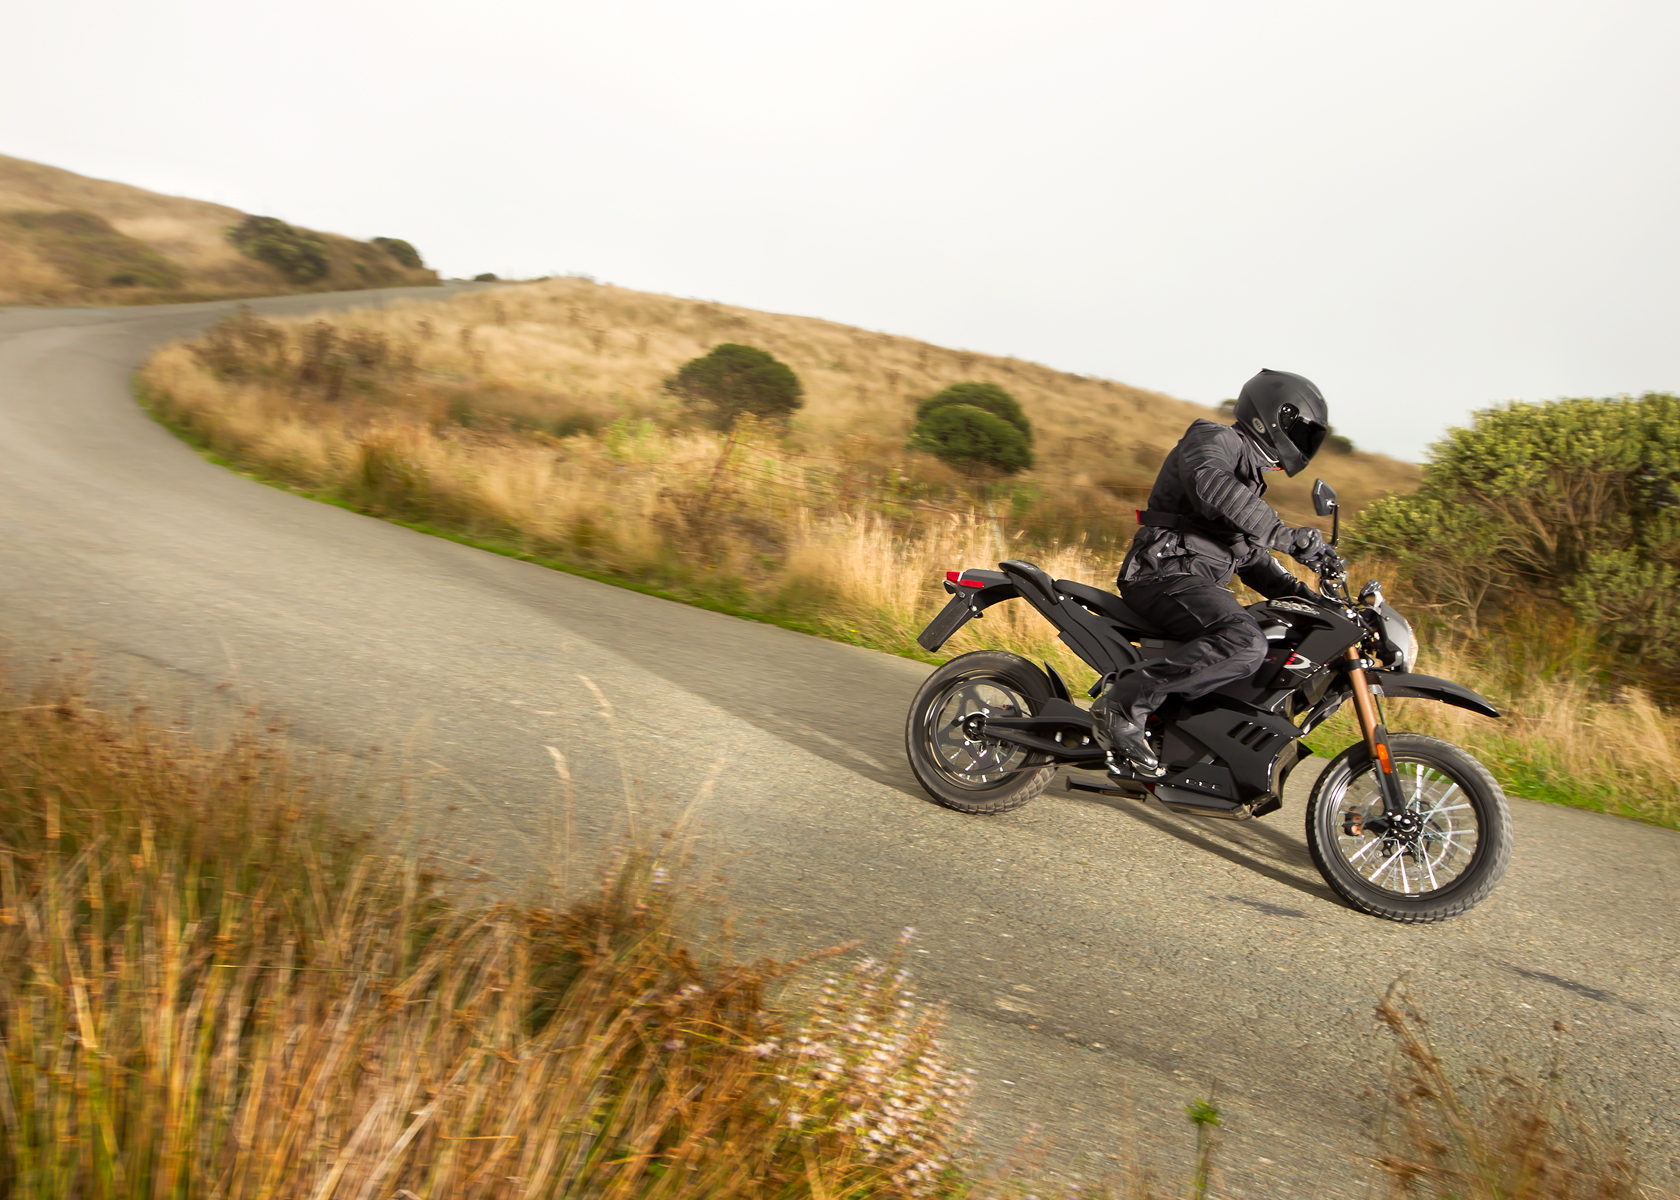 '.2012 Zero DS Electric Motorcycle: Downhill, Lean Left.'